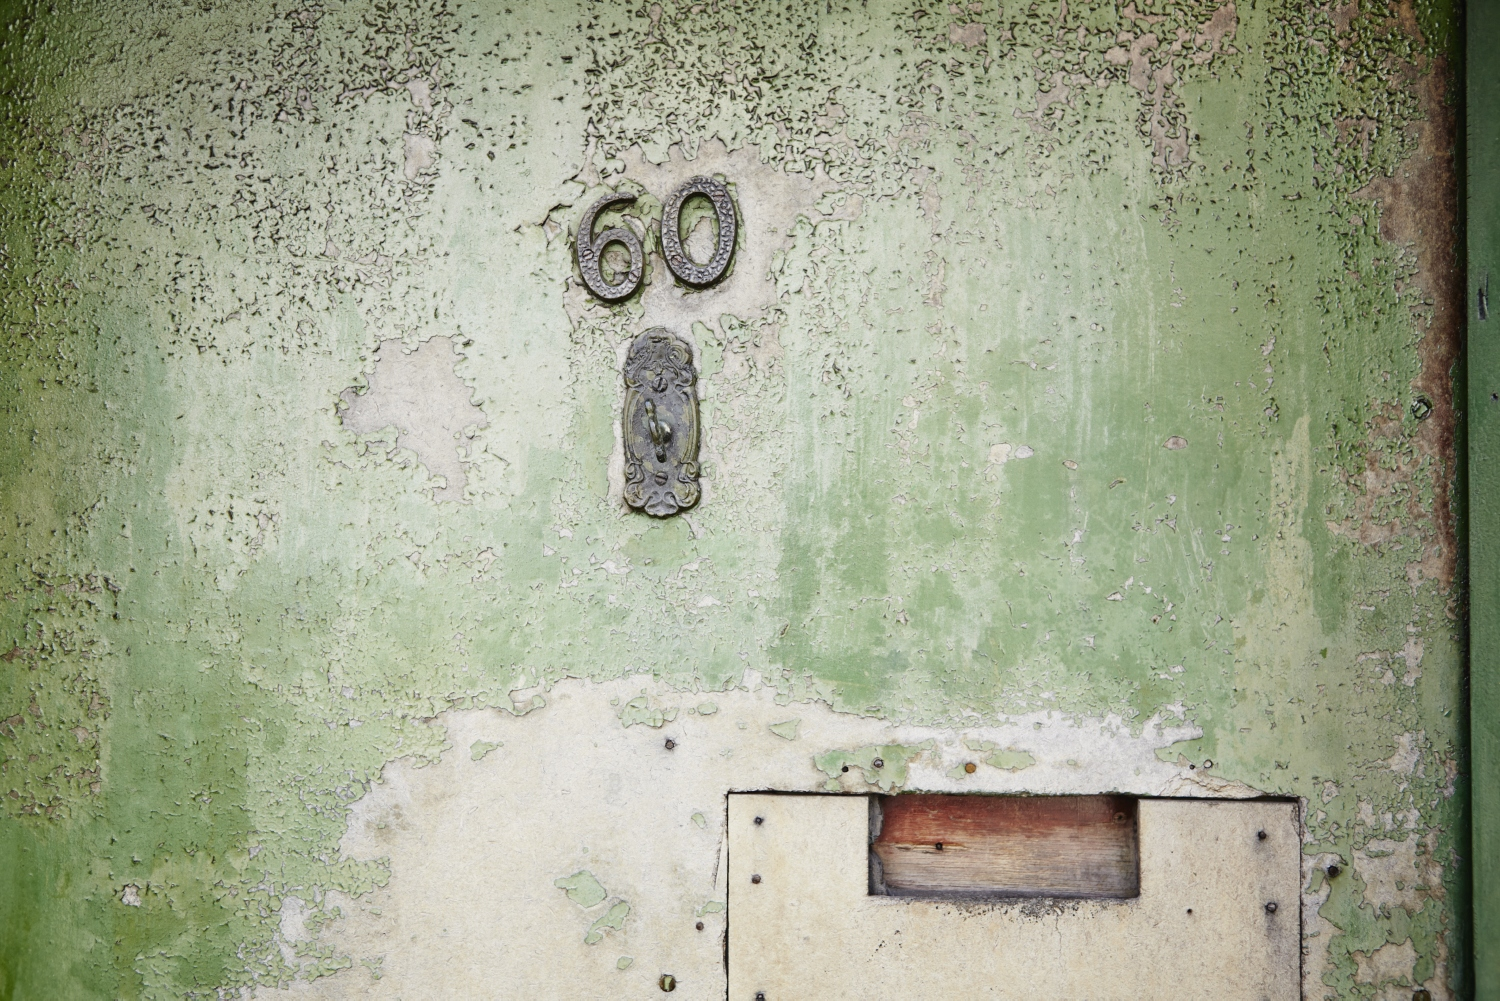 The number 60 on a faded green-painted surface.